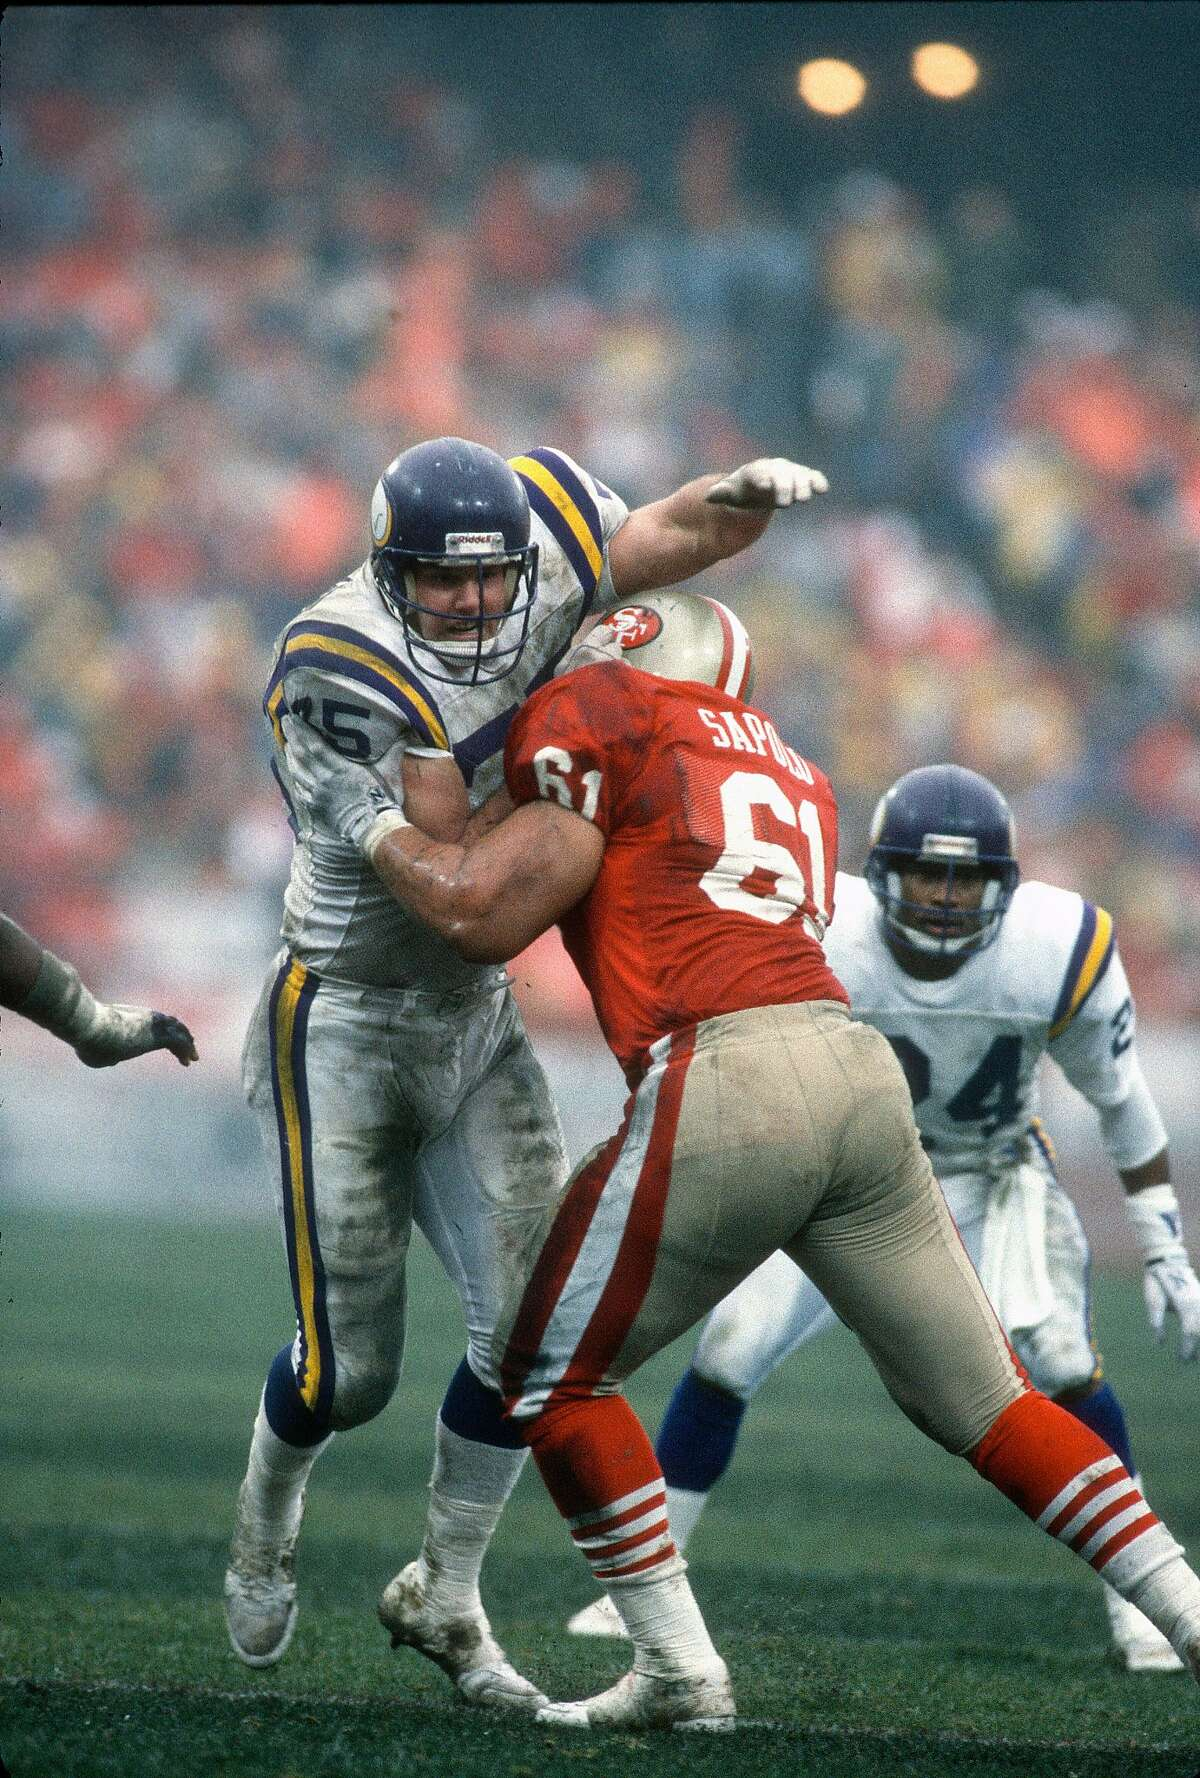 SAN FRANCISCO, CA - JANUARY 6: Keith Millard #75 of the Minnesota Viking rushes up against the block of Jesse Sapolu #61 of the San Francisco 49ers during the NFC Divisional Playoff game January 6, 1990 at Candlestick Park in San Francisco, California. M